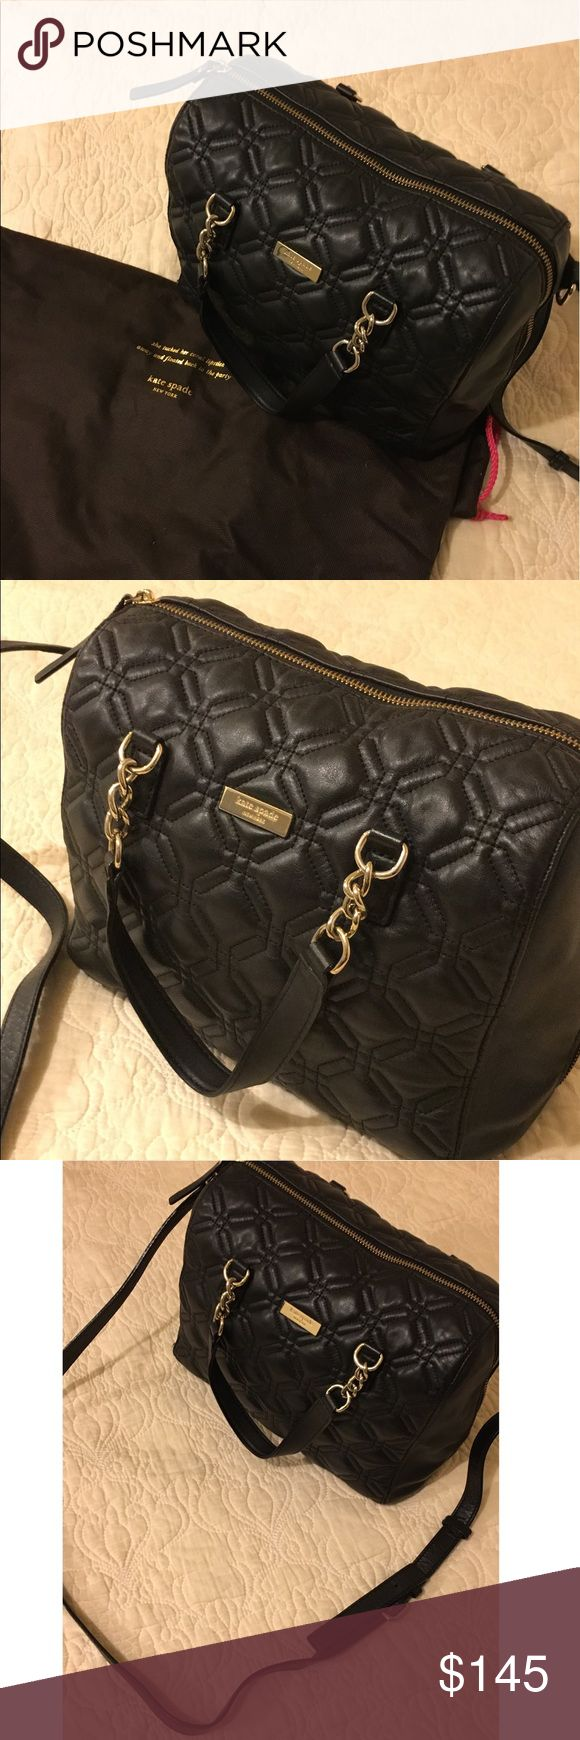 Kate Spade 🔥 Handbag Kate Spade Quilted Black Leather Handbag SALE!!! In great condition. With dust bag :) kate spade Bags